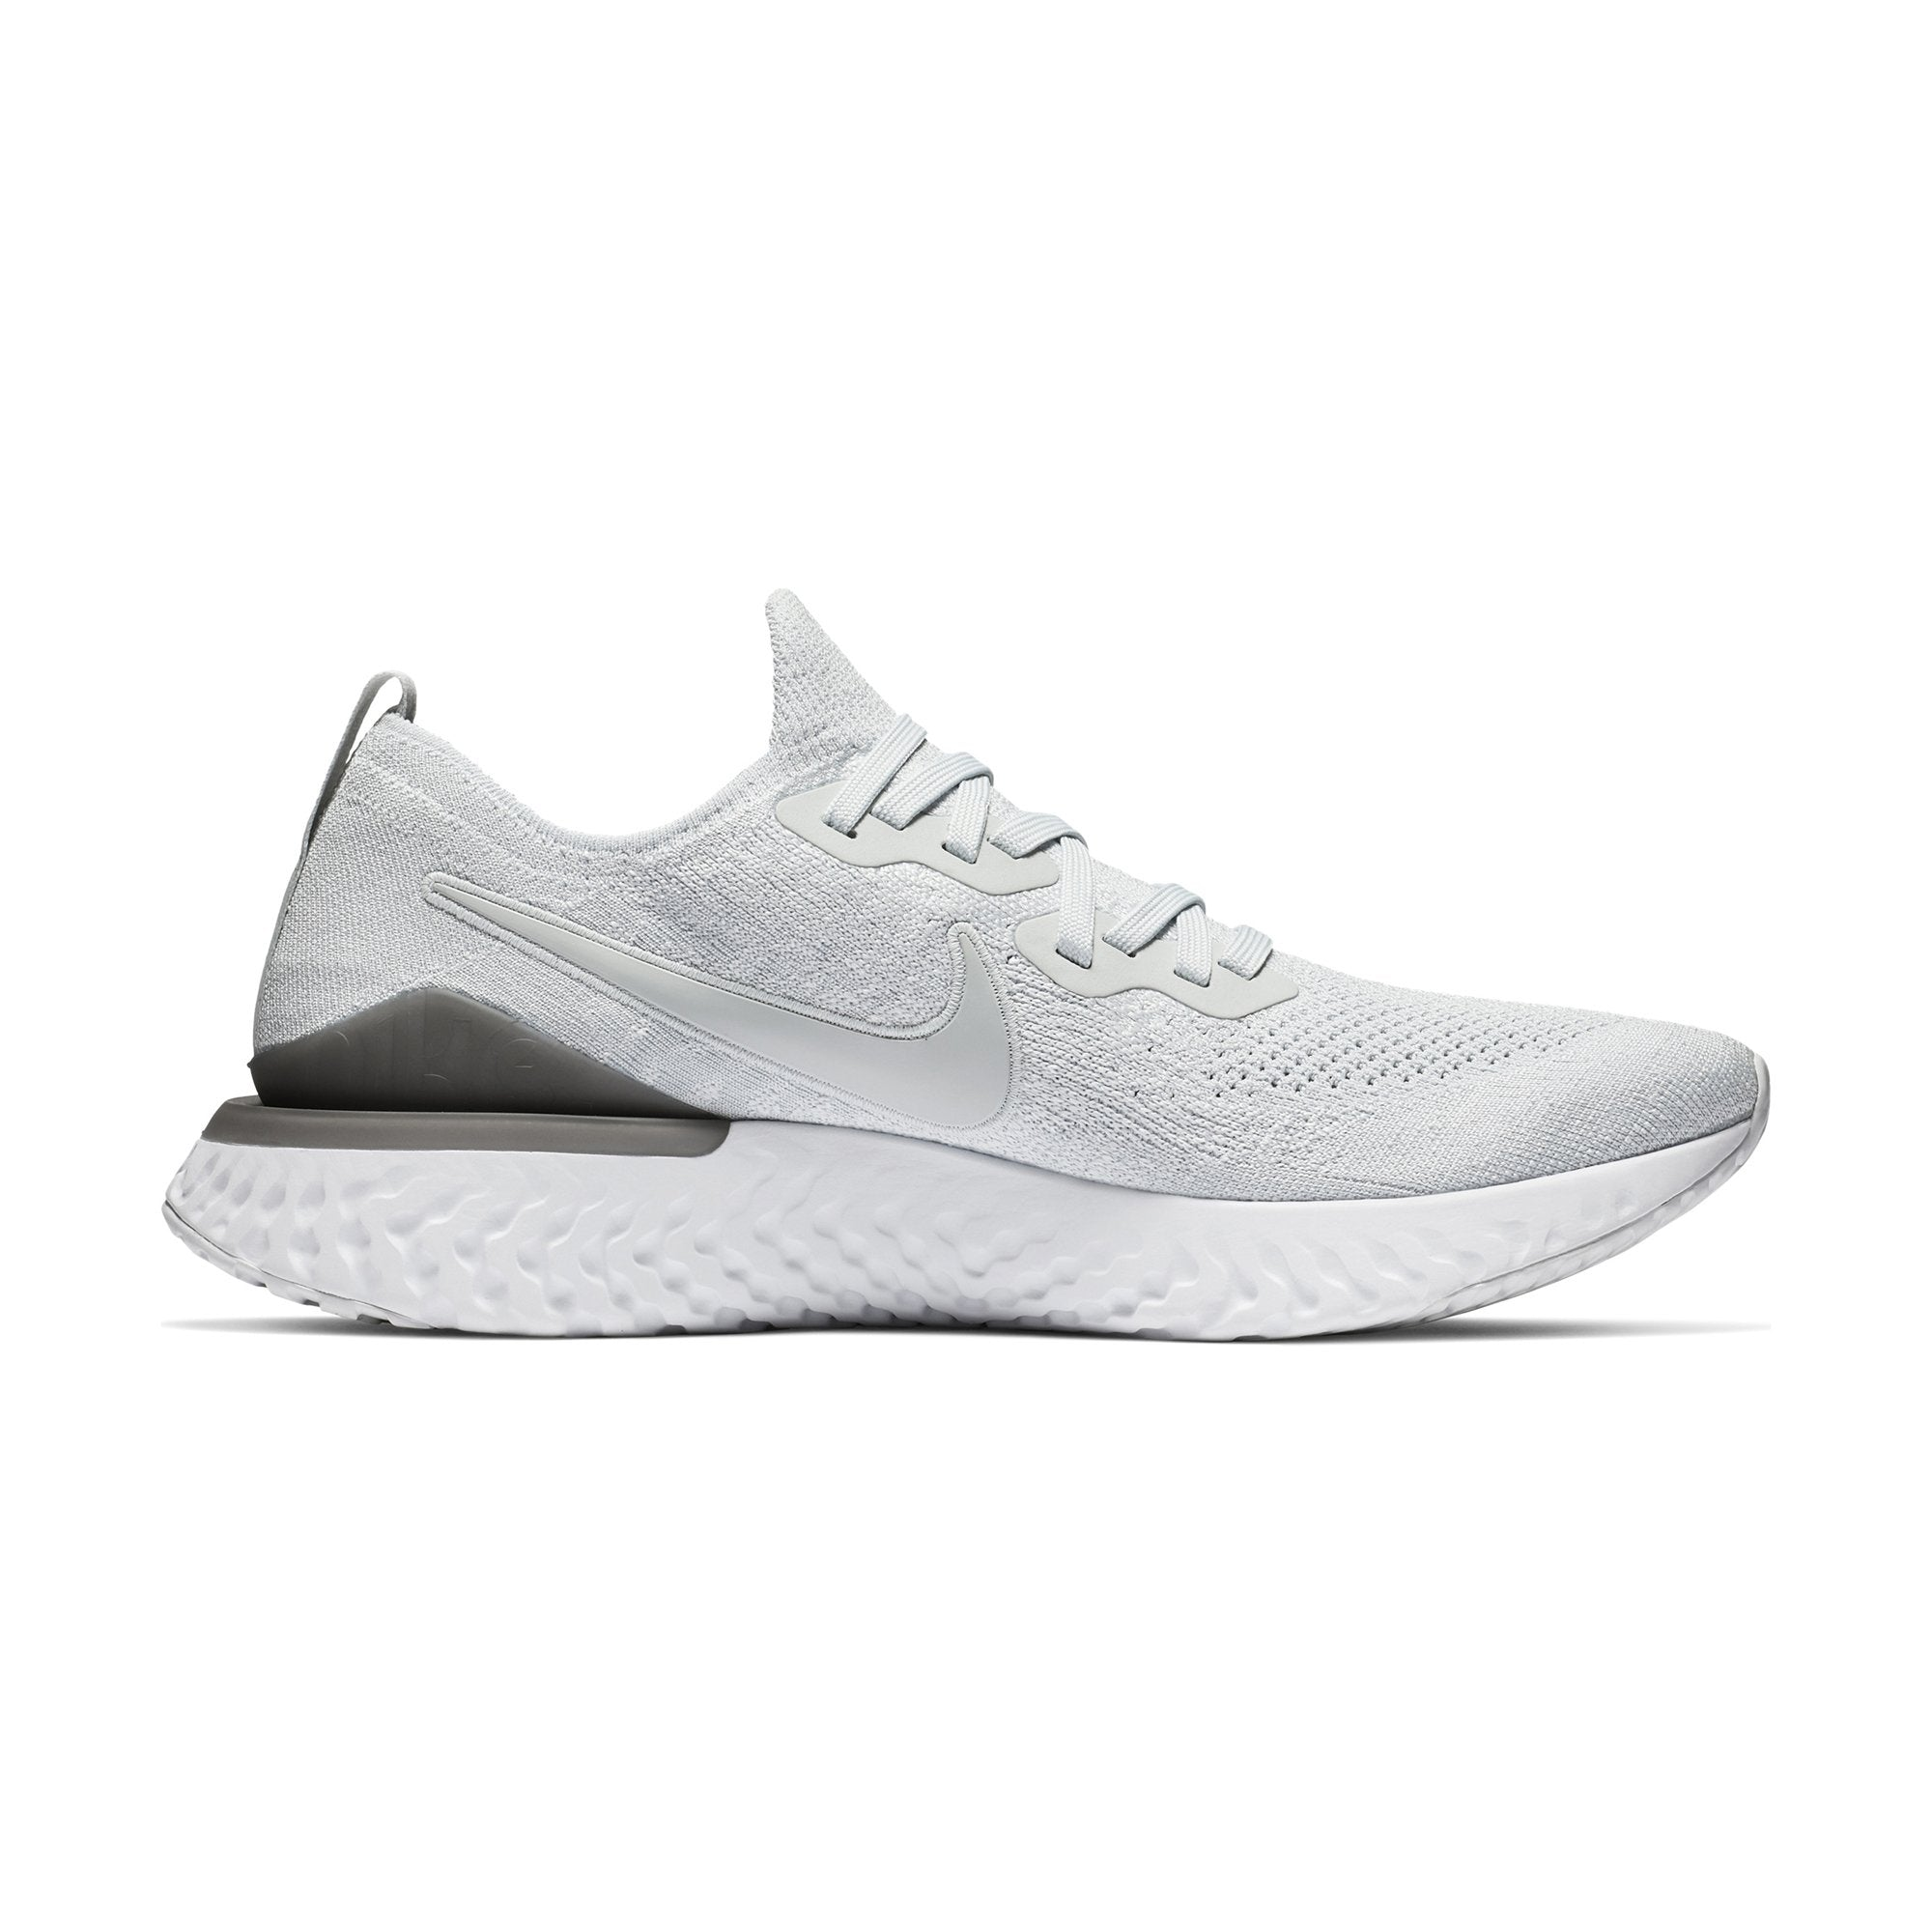 13e5b0f7b4786 Buy Nike Men Epic React Flyknit 2 Running Shoes